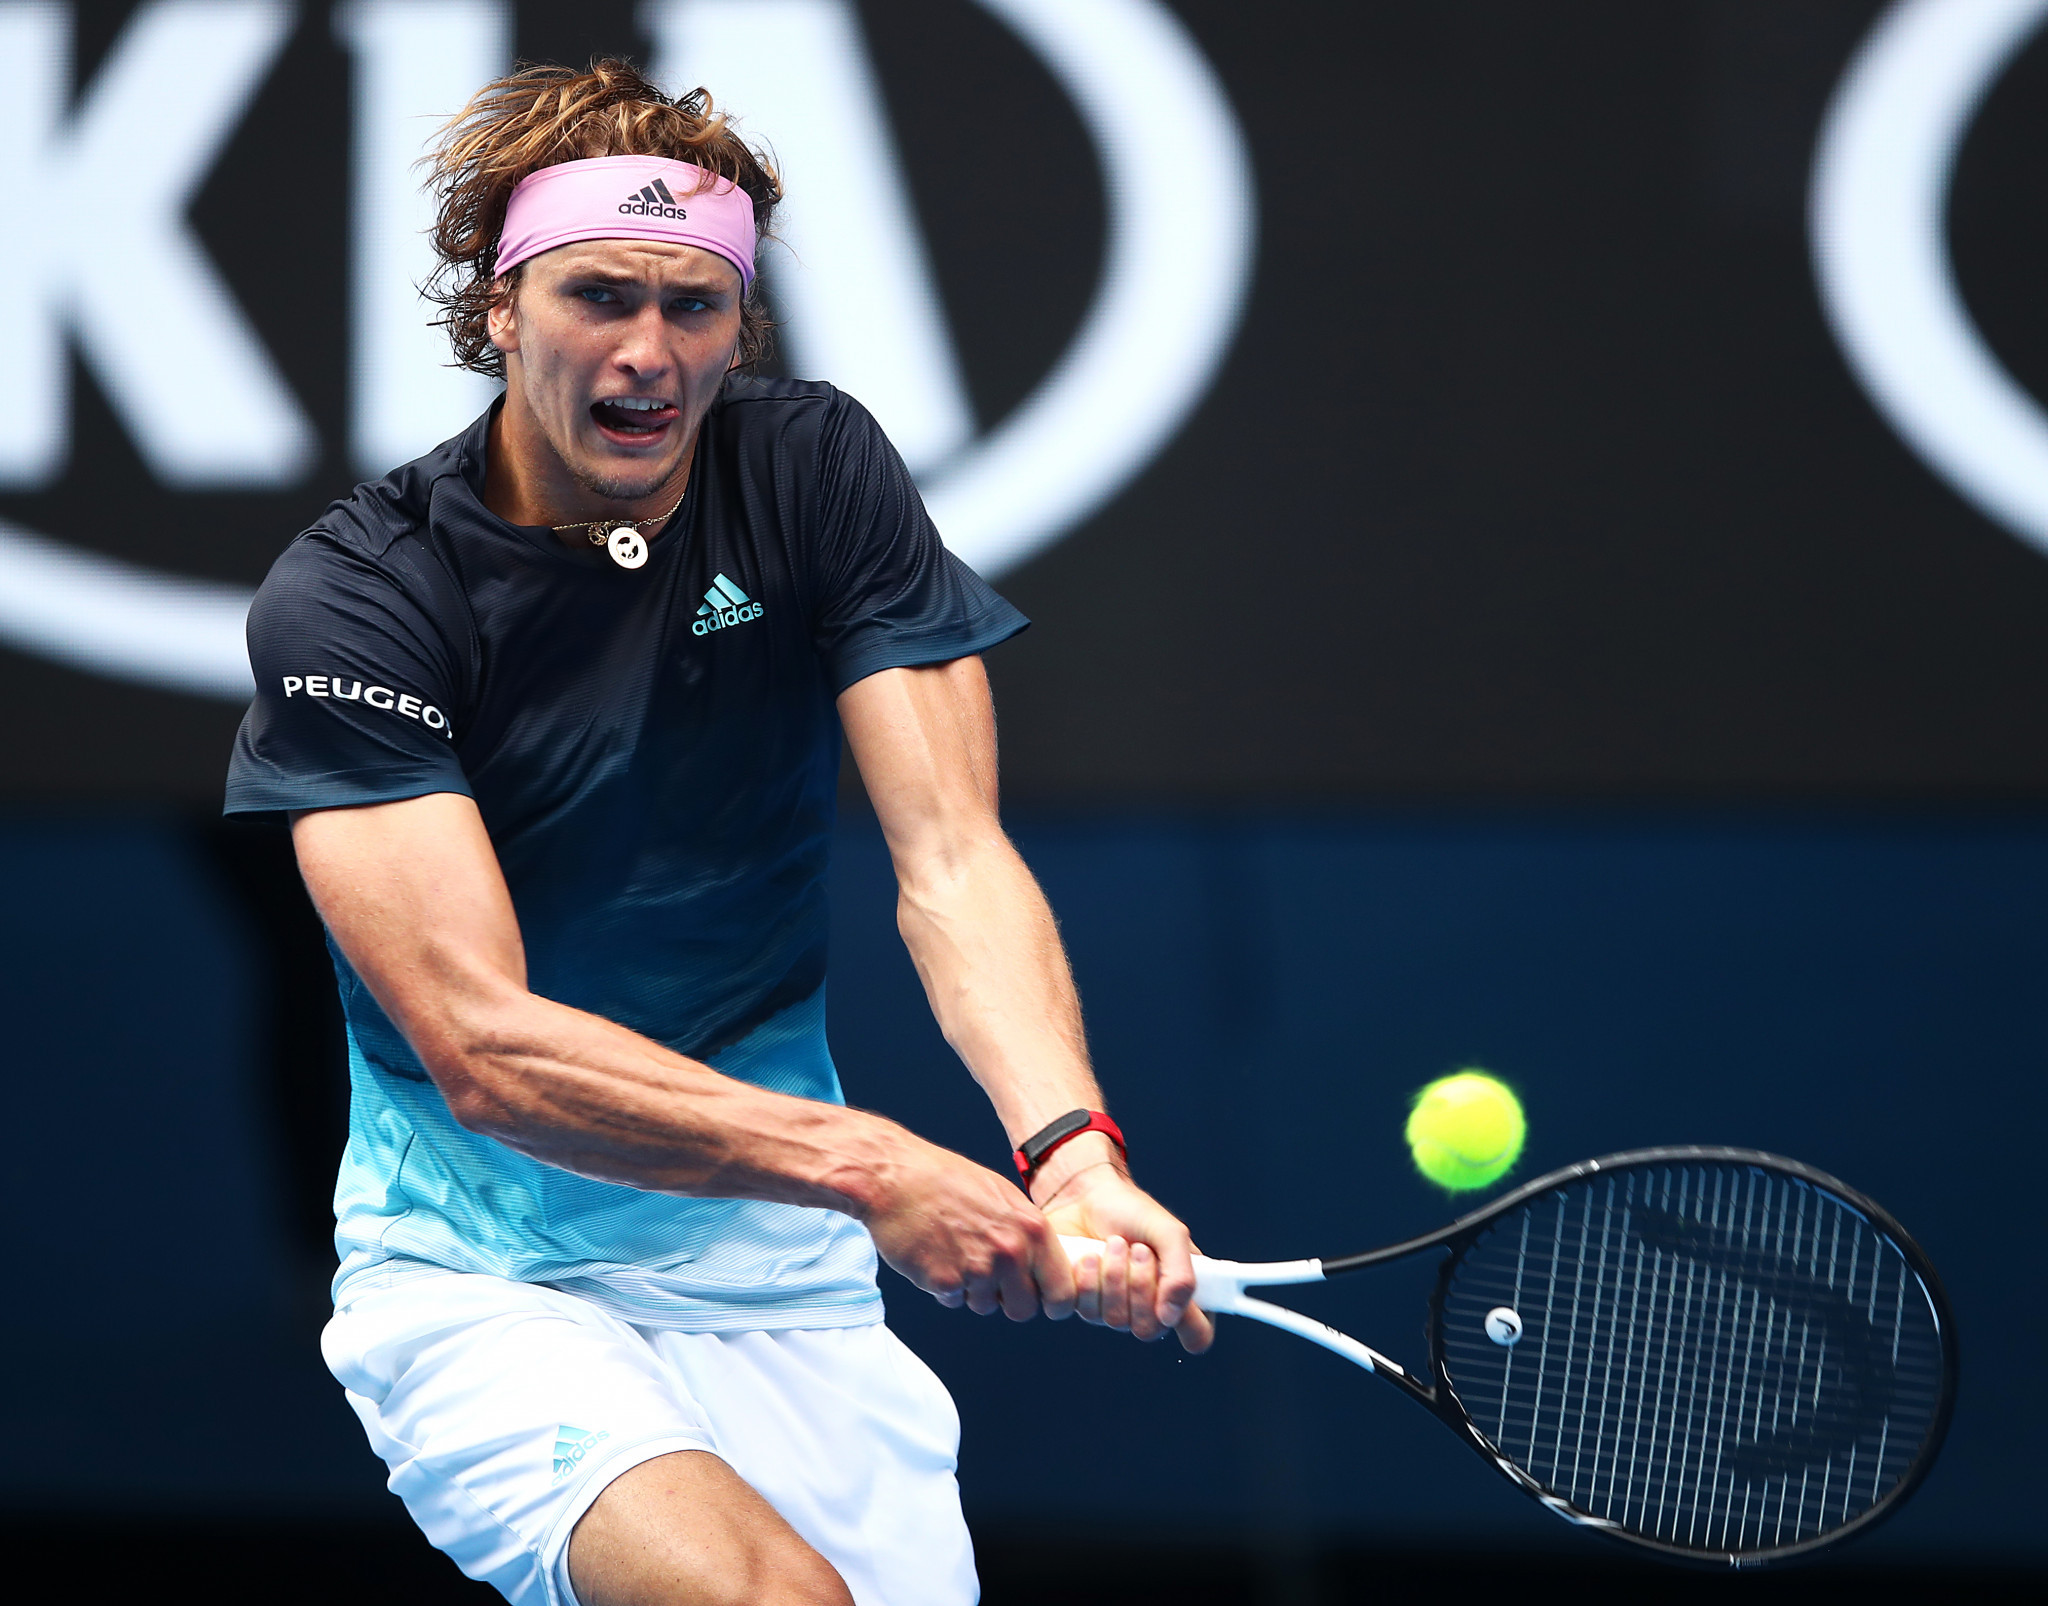 Alexander Zverev won impressively as he pursues a maiden Grand Slam title ©Getty Images